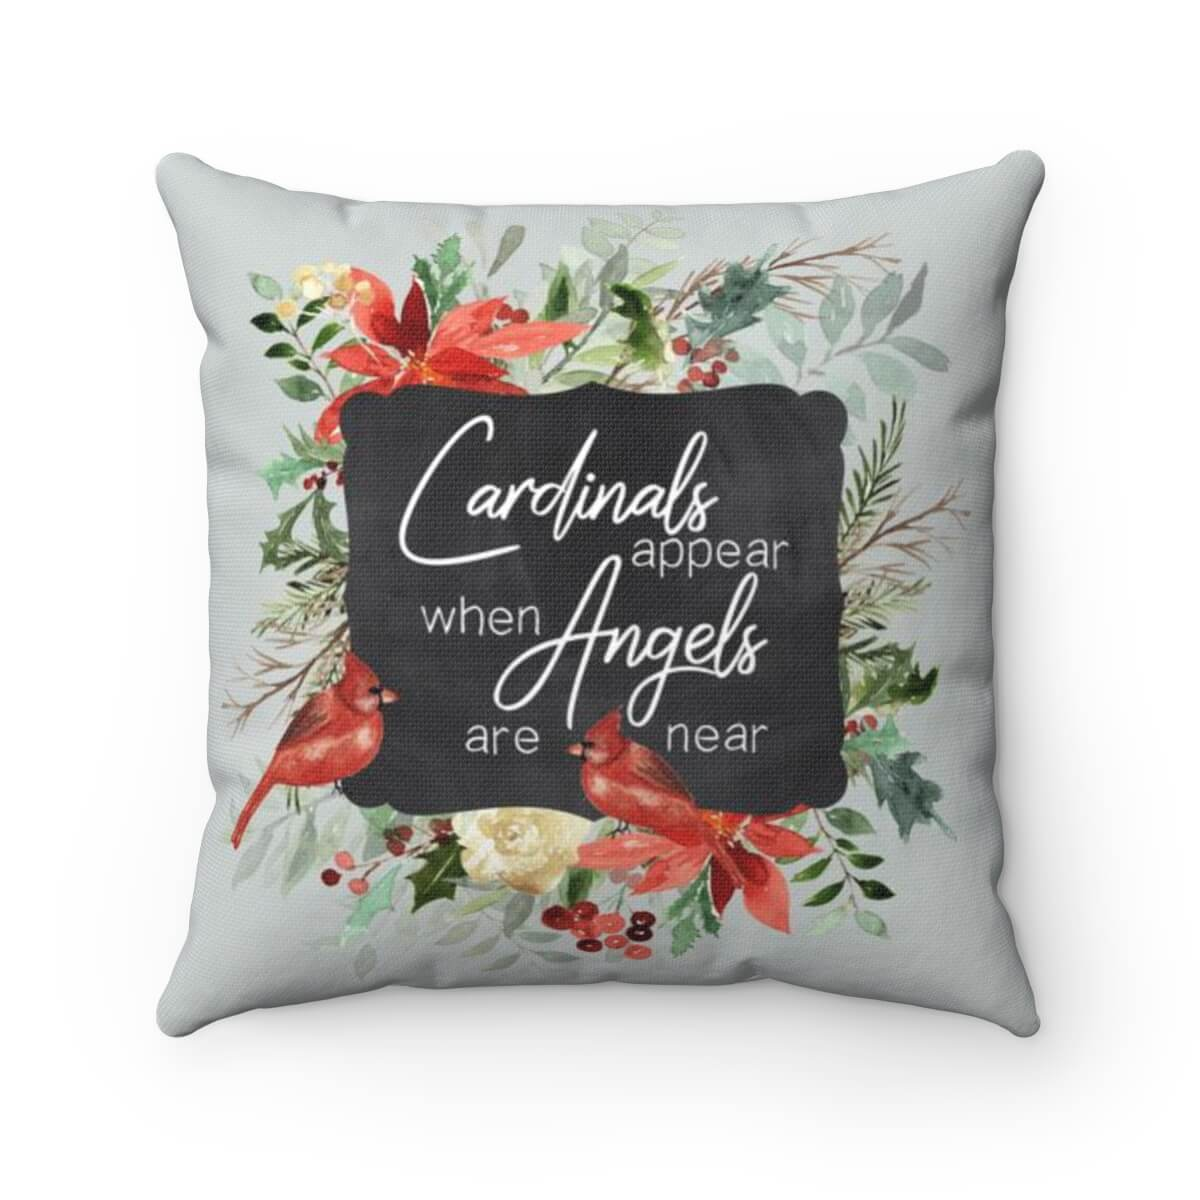 Cardinals Appear When Angels Are Near - Pillow